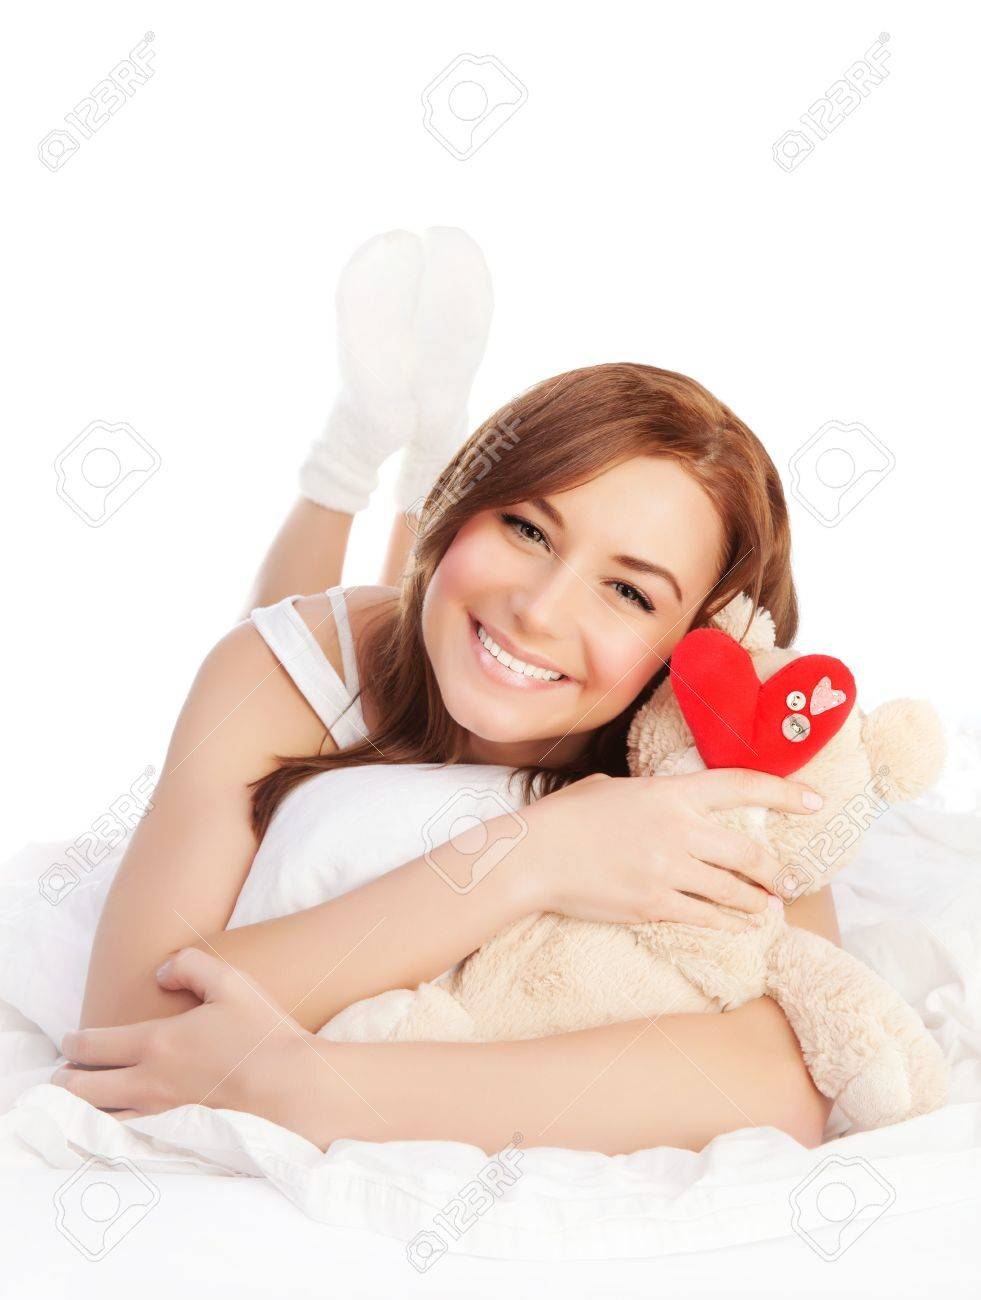 Picture of happy woman laying down in bed linen and enjoying romantic present, soft bear and red handmade heart-shape toy as gift for Valentines day holiday, isolated on white background, love concept Stock Photo - 17641381